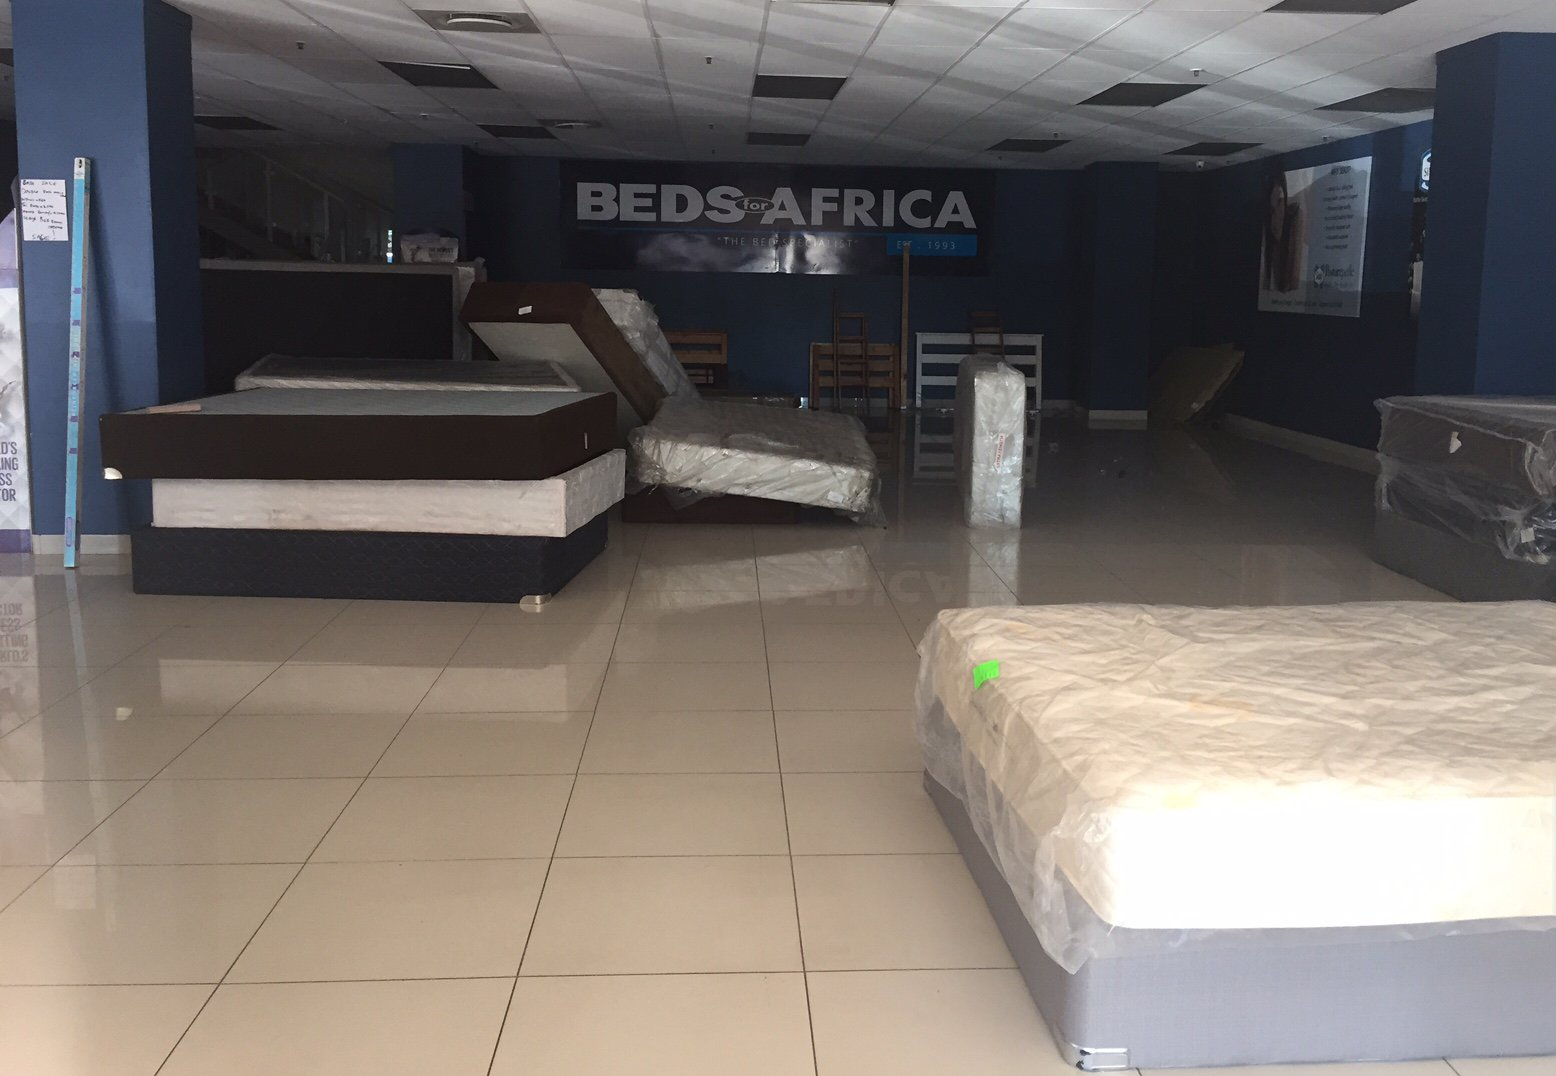 Beds for Africa closes